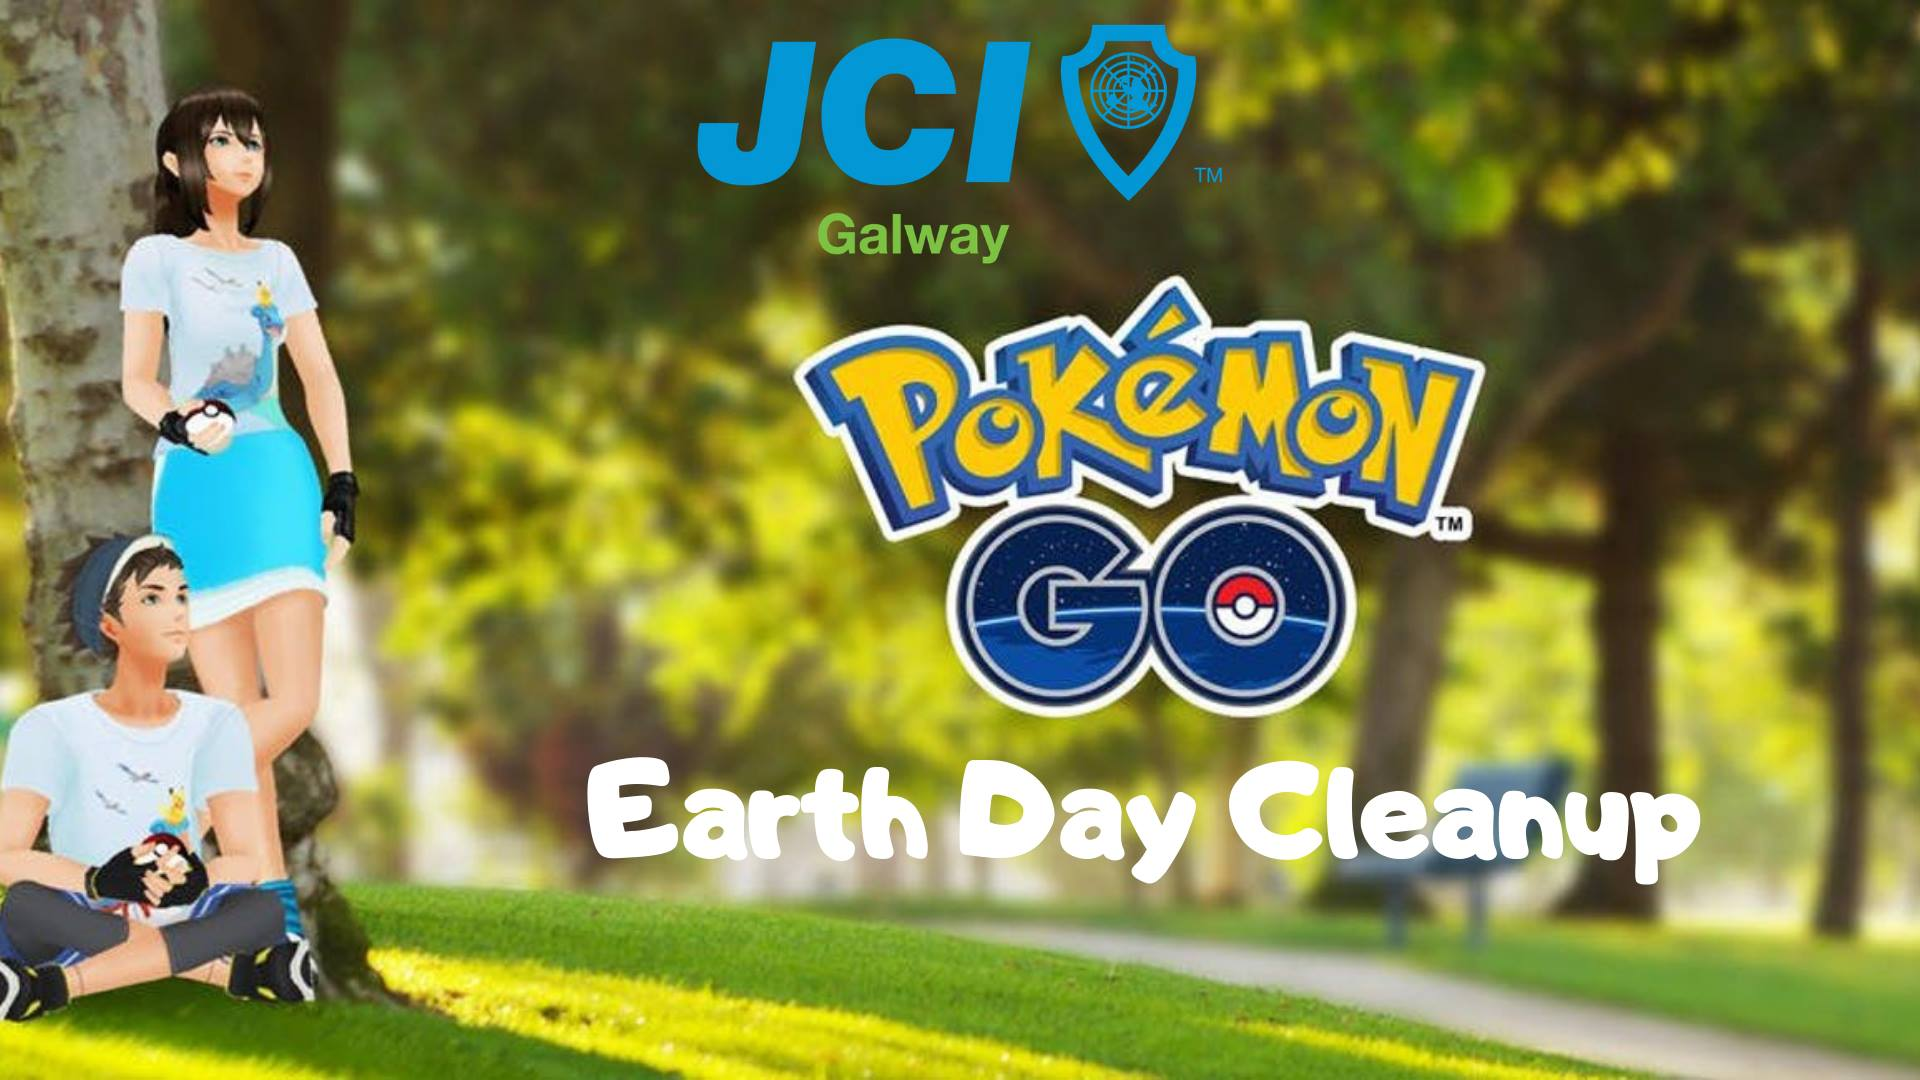 Ireland Earth Day Pokemon Go Cleanup in Galway